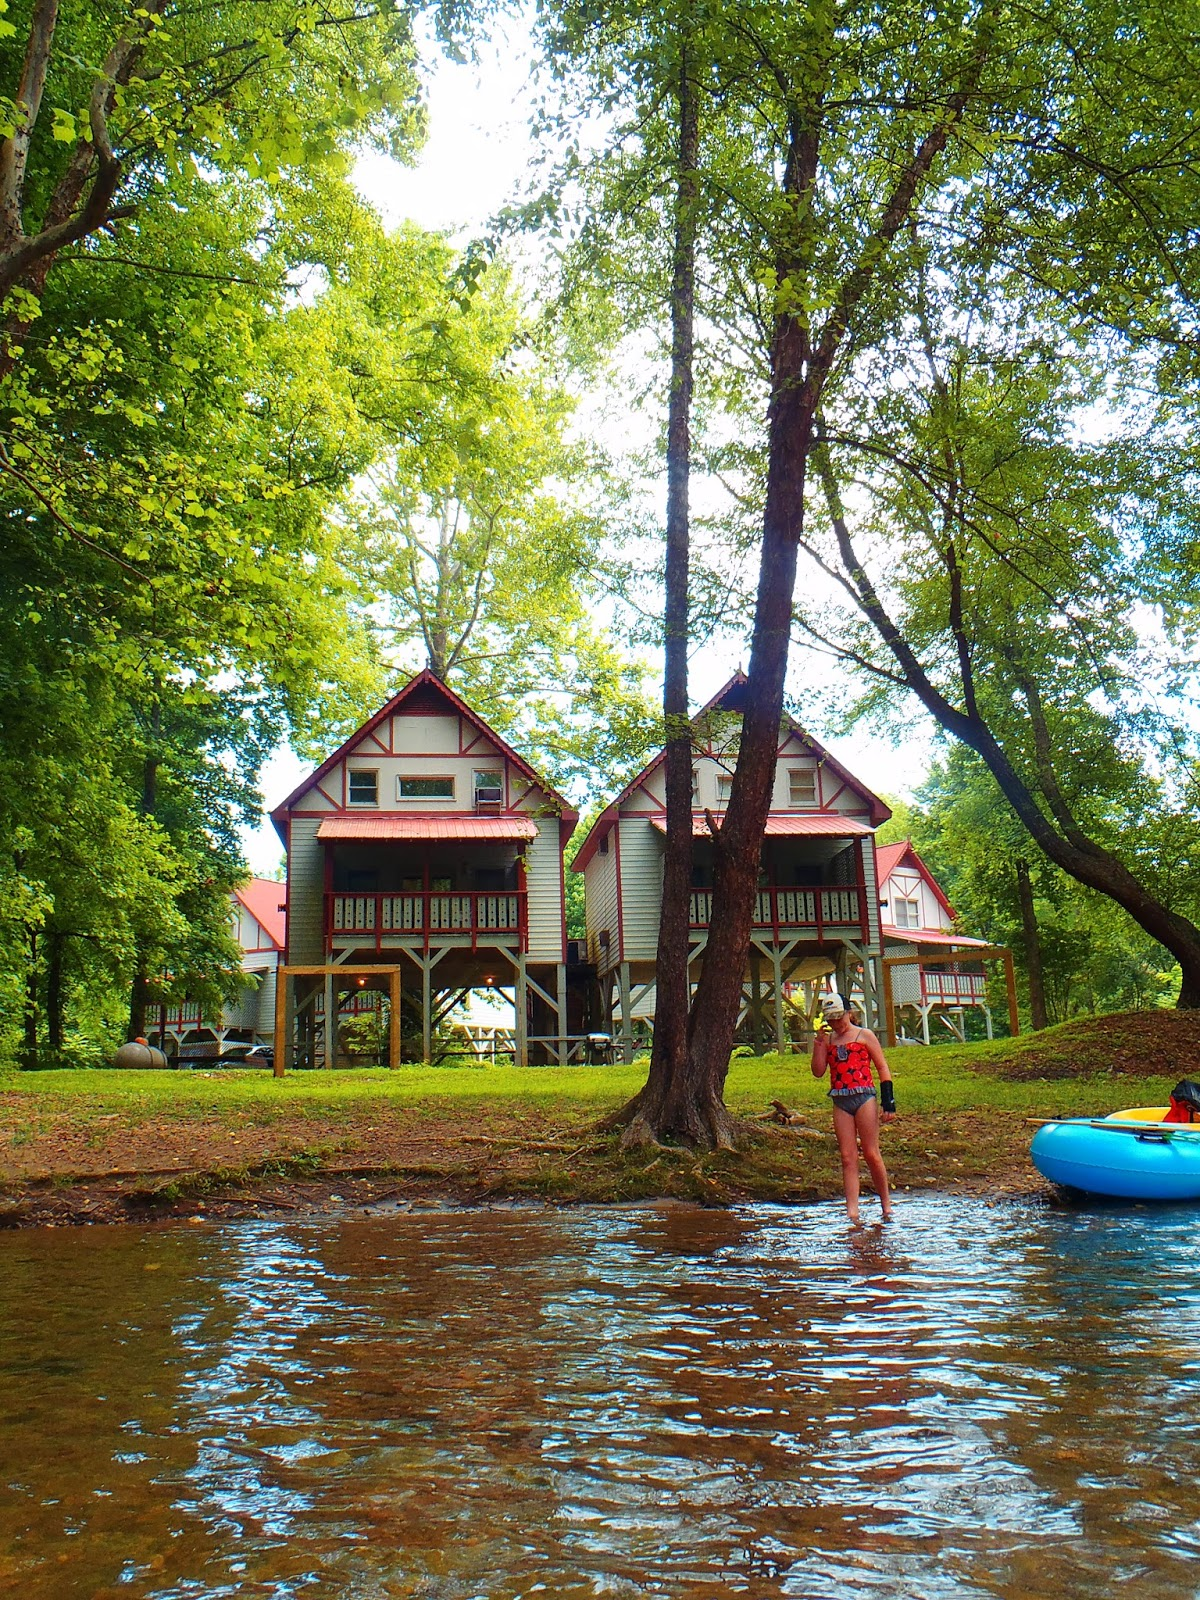 Adventures in the German themed village of Helen, Georgia - The